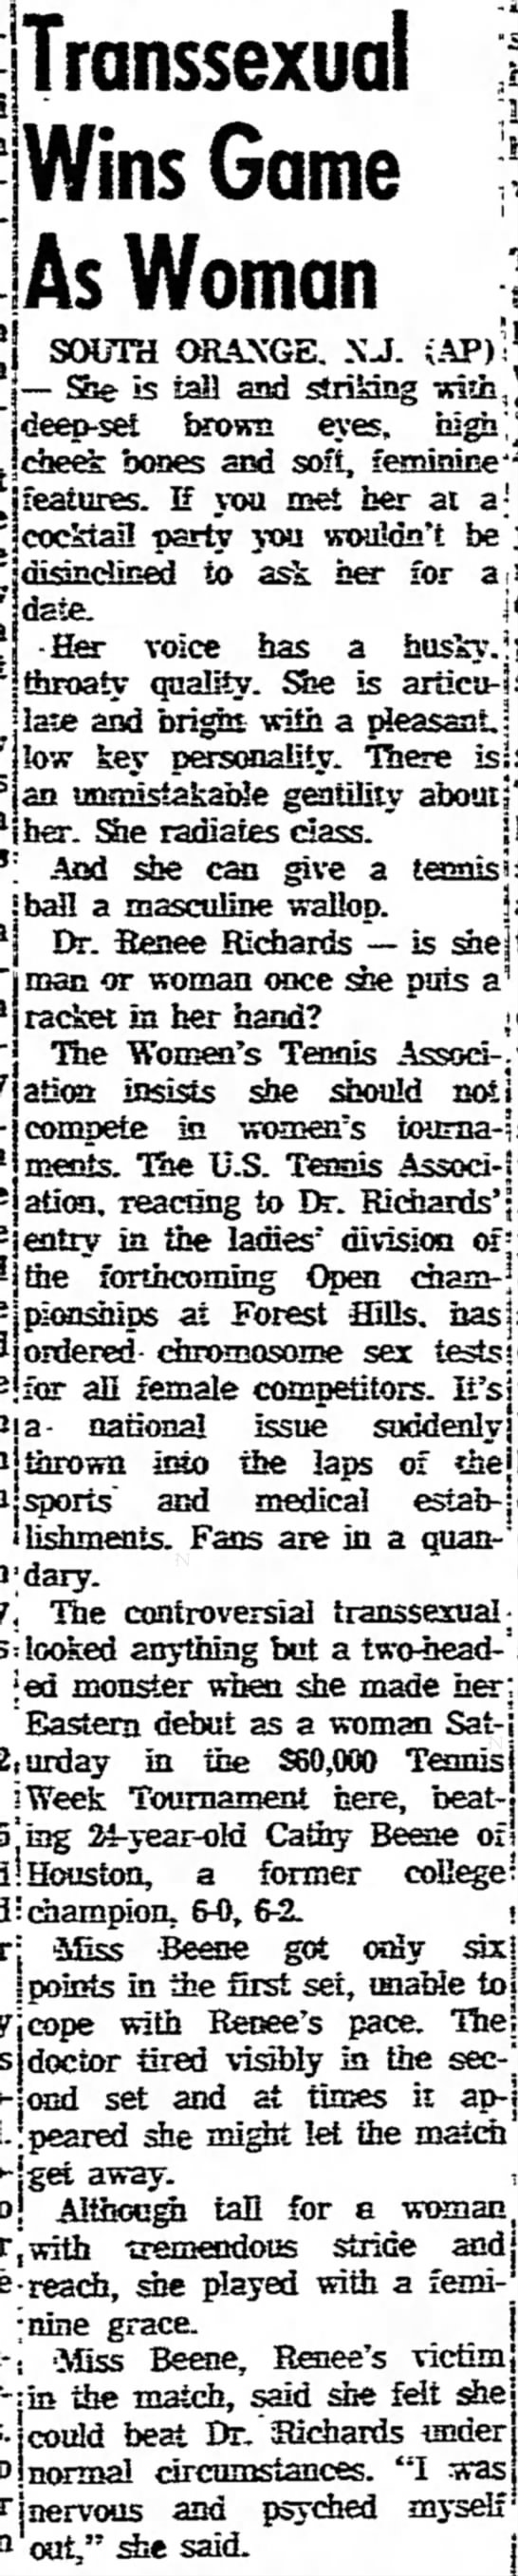 Transsexual Tennis Player, 9/23/76 - Divi- Ox- Transsexual Wins Game As Woman 1 New...